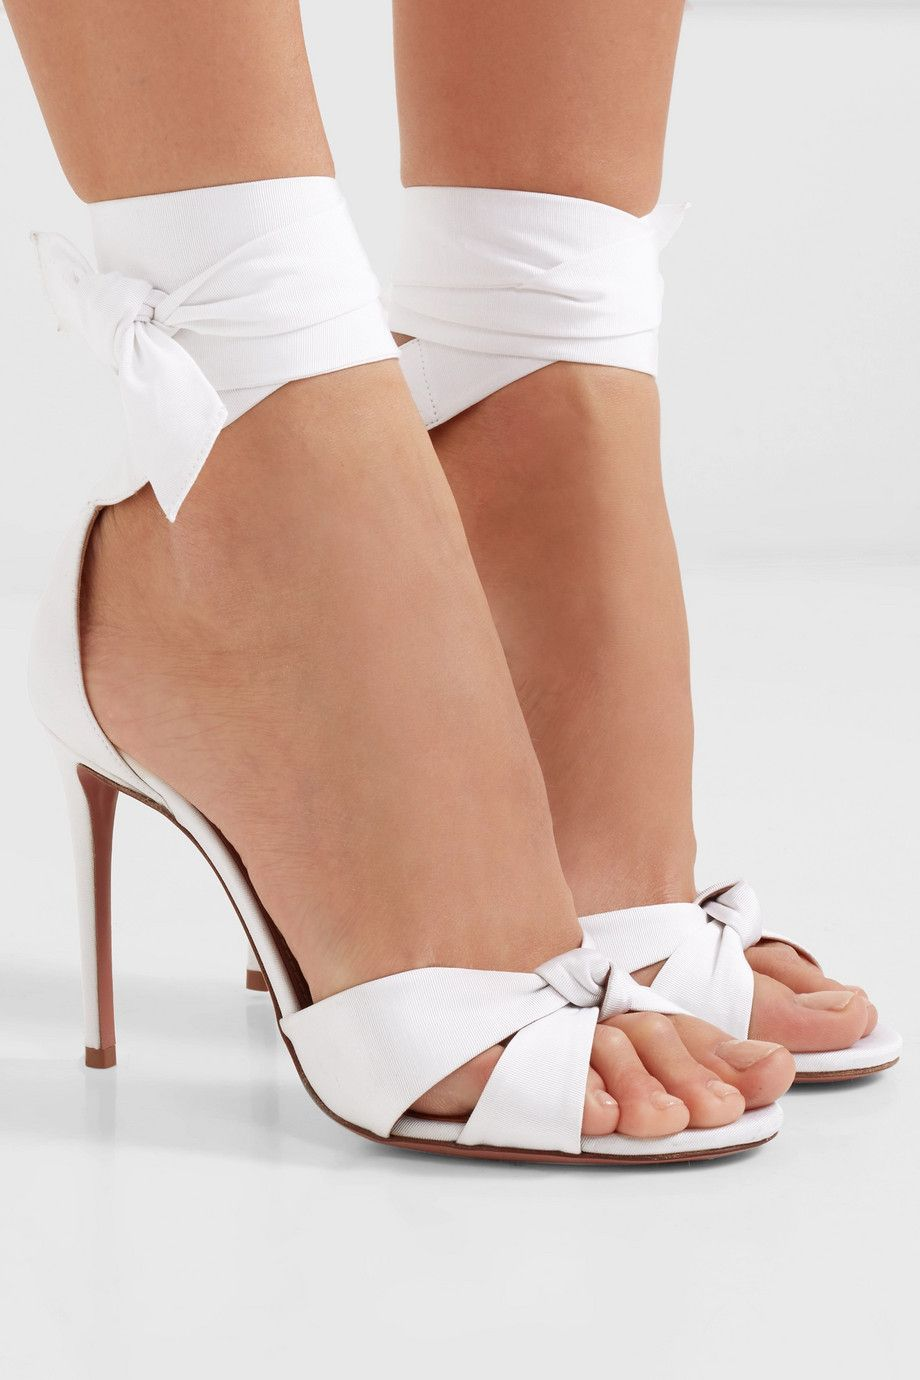 All Tied Up grosgrain sandals